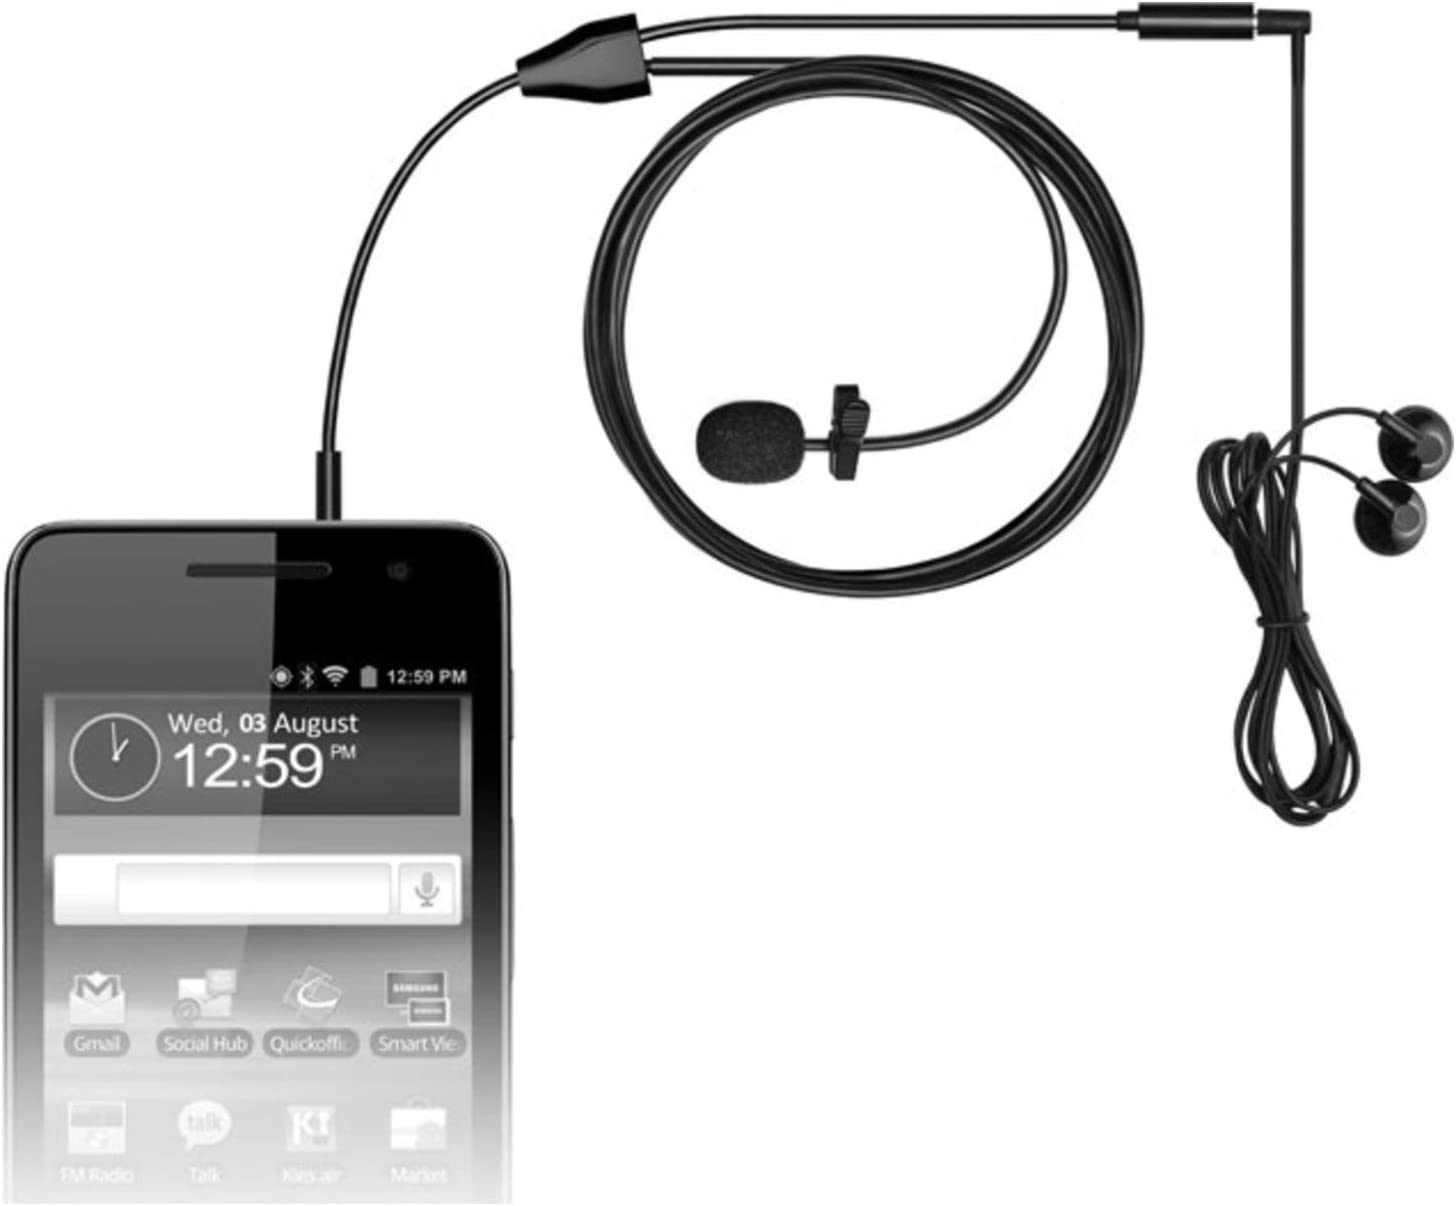 Pair of MXL MM-160 Omni-Directional Lavalier Microphones for Cell Phones and Tab